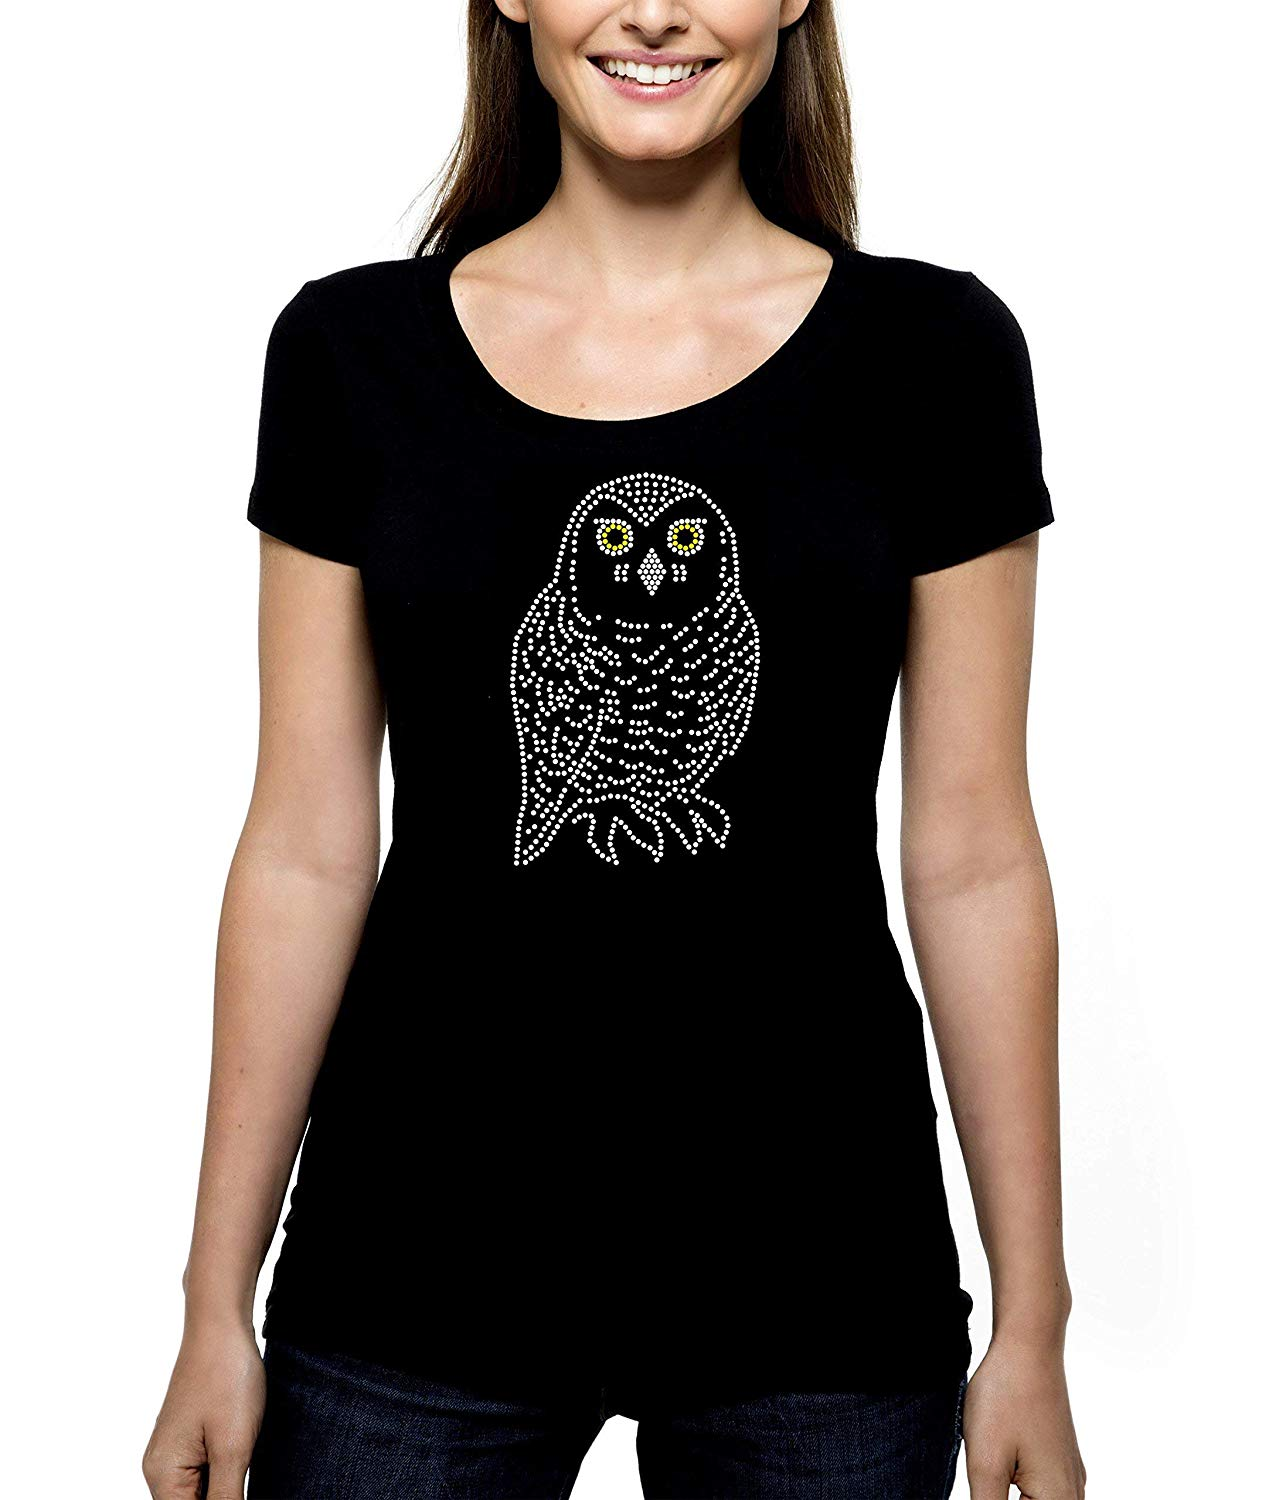 8d459958fd9 Get Quotations · Snowy Owl RHINESTONE T-Shirt Shirt Tee Bling - Bird of  Prey Birds Owls Raptor